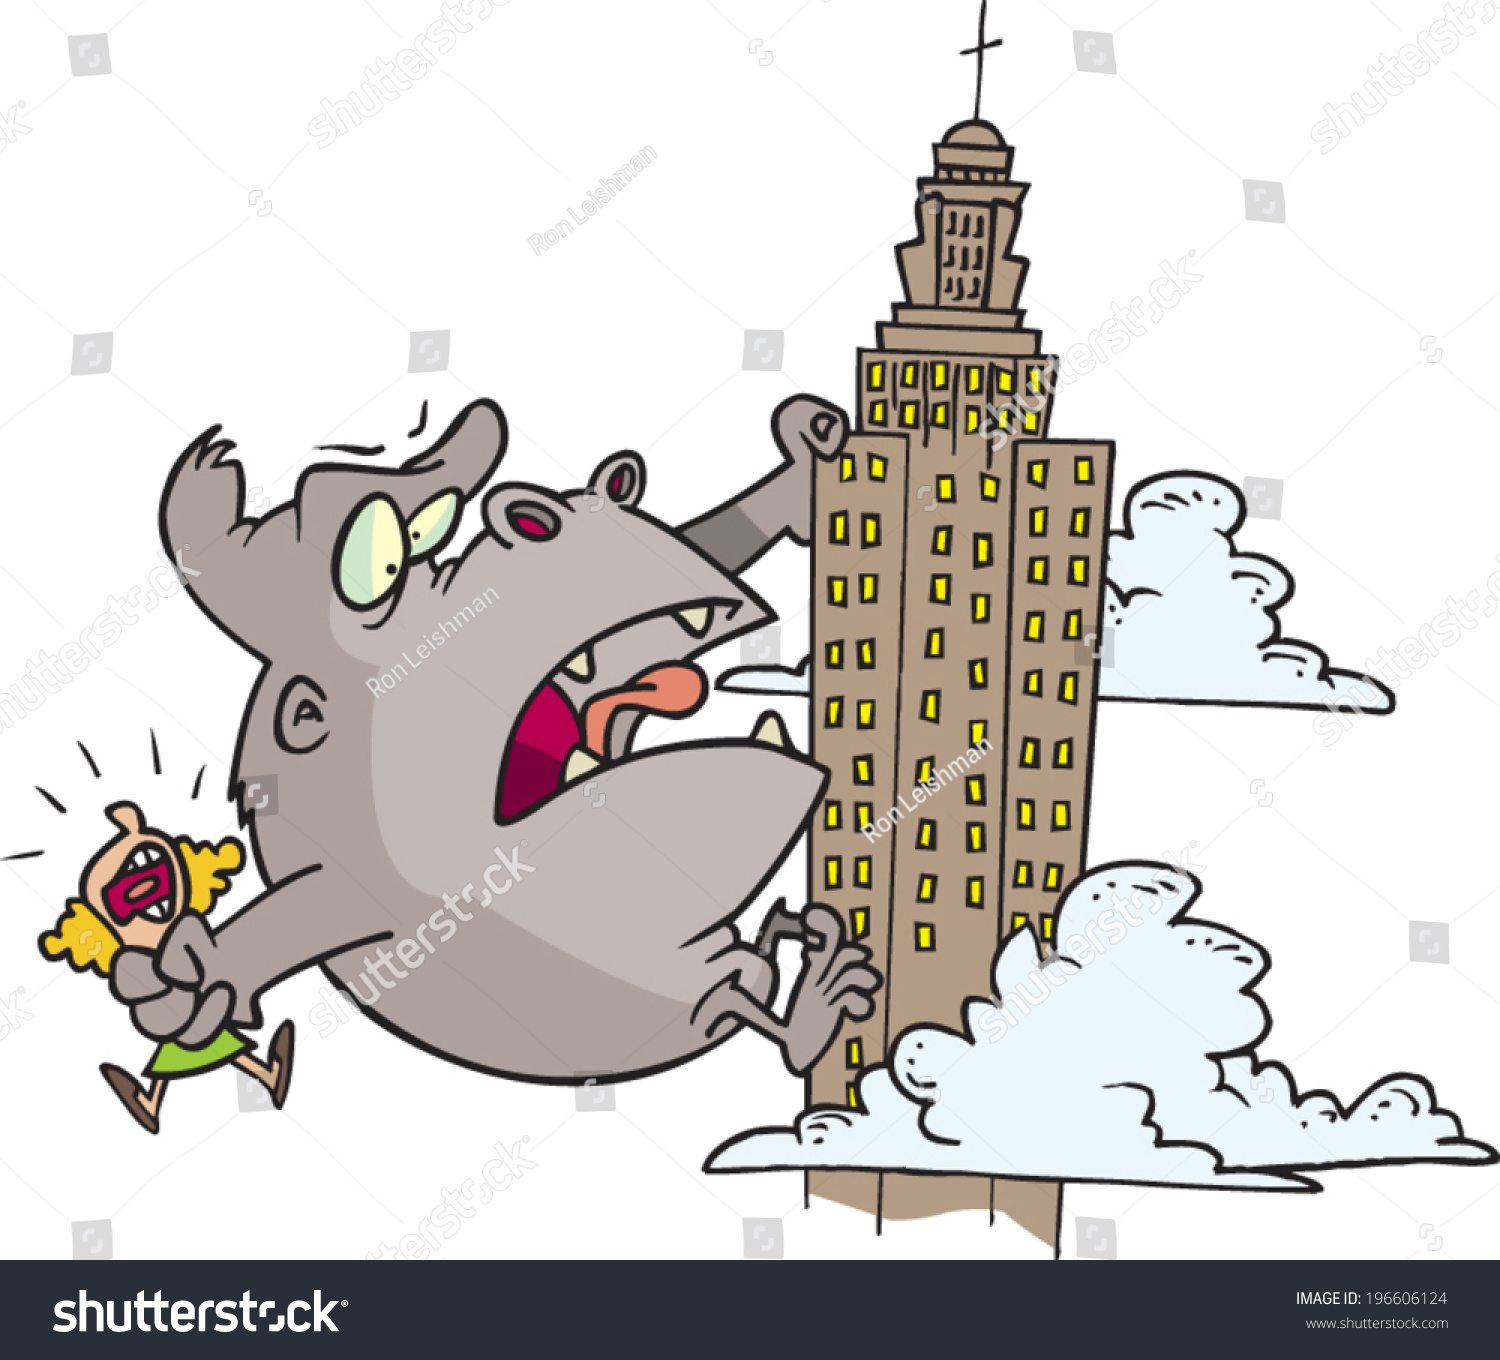 State Vector Shutterstock Stock Gorilla Giant Empire - Climbing Cartoon 196606124 royalty Free